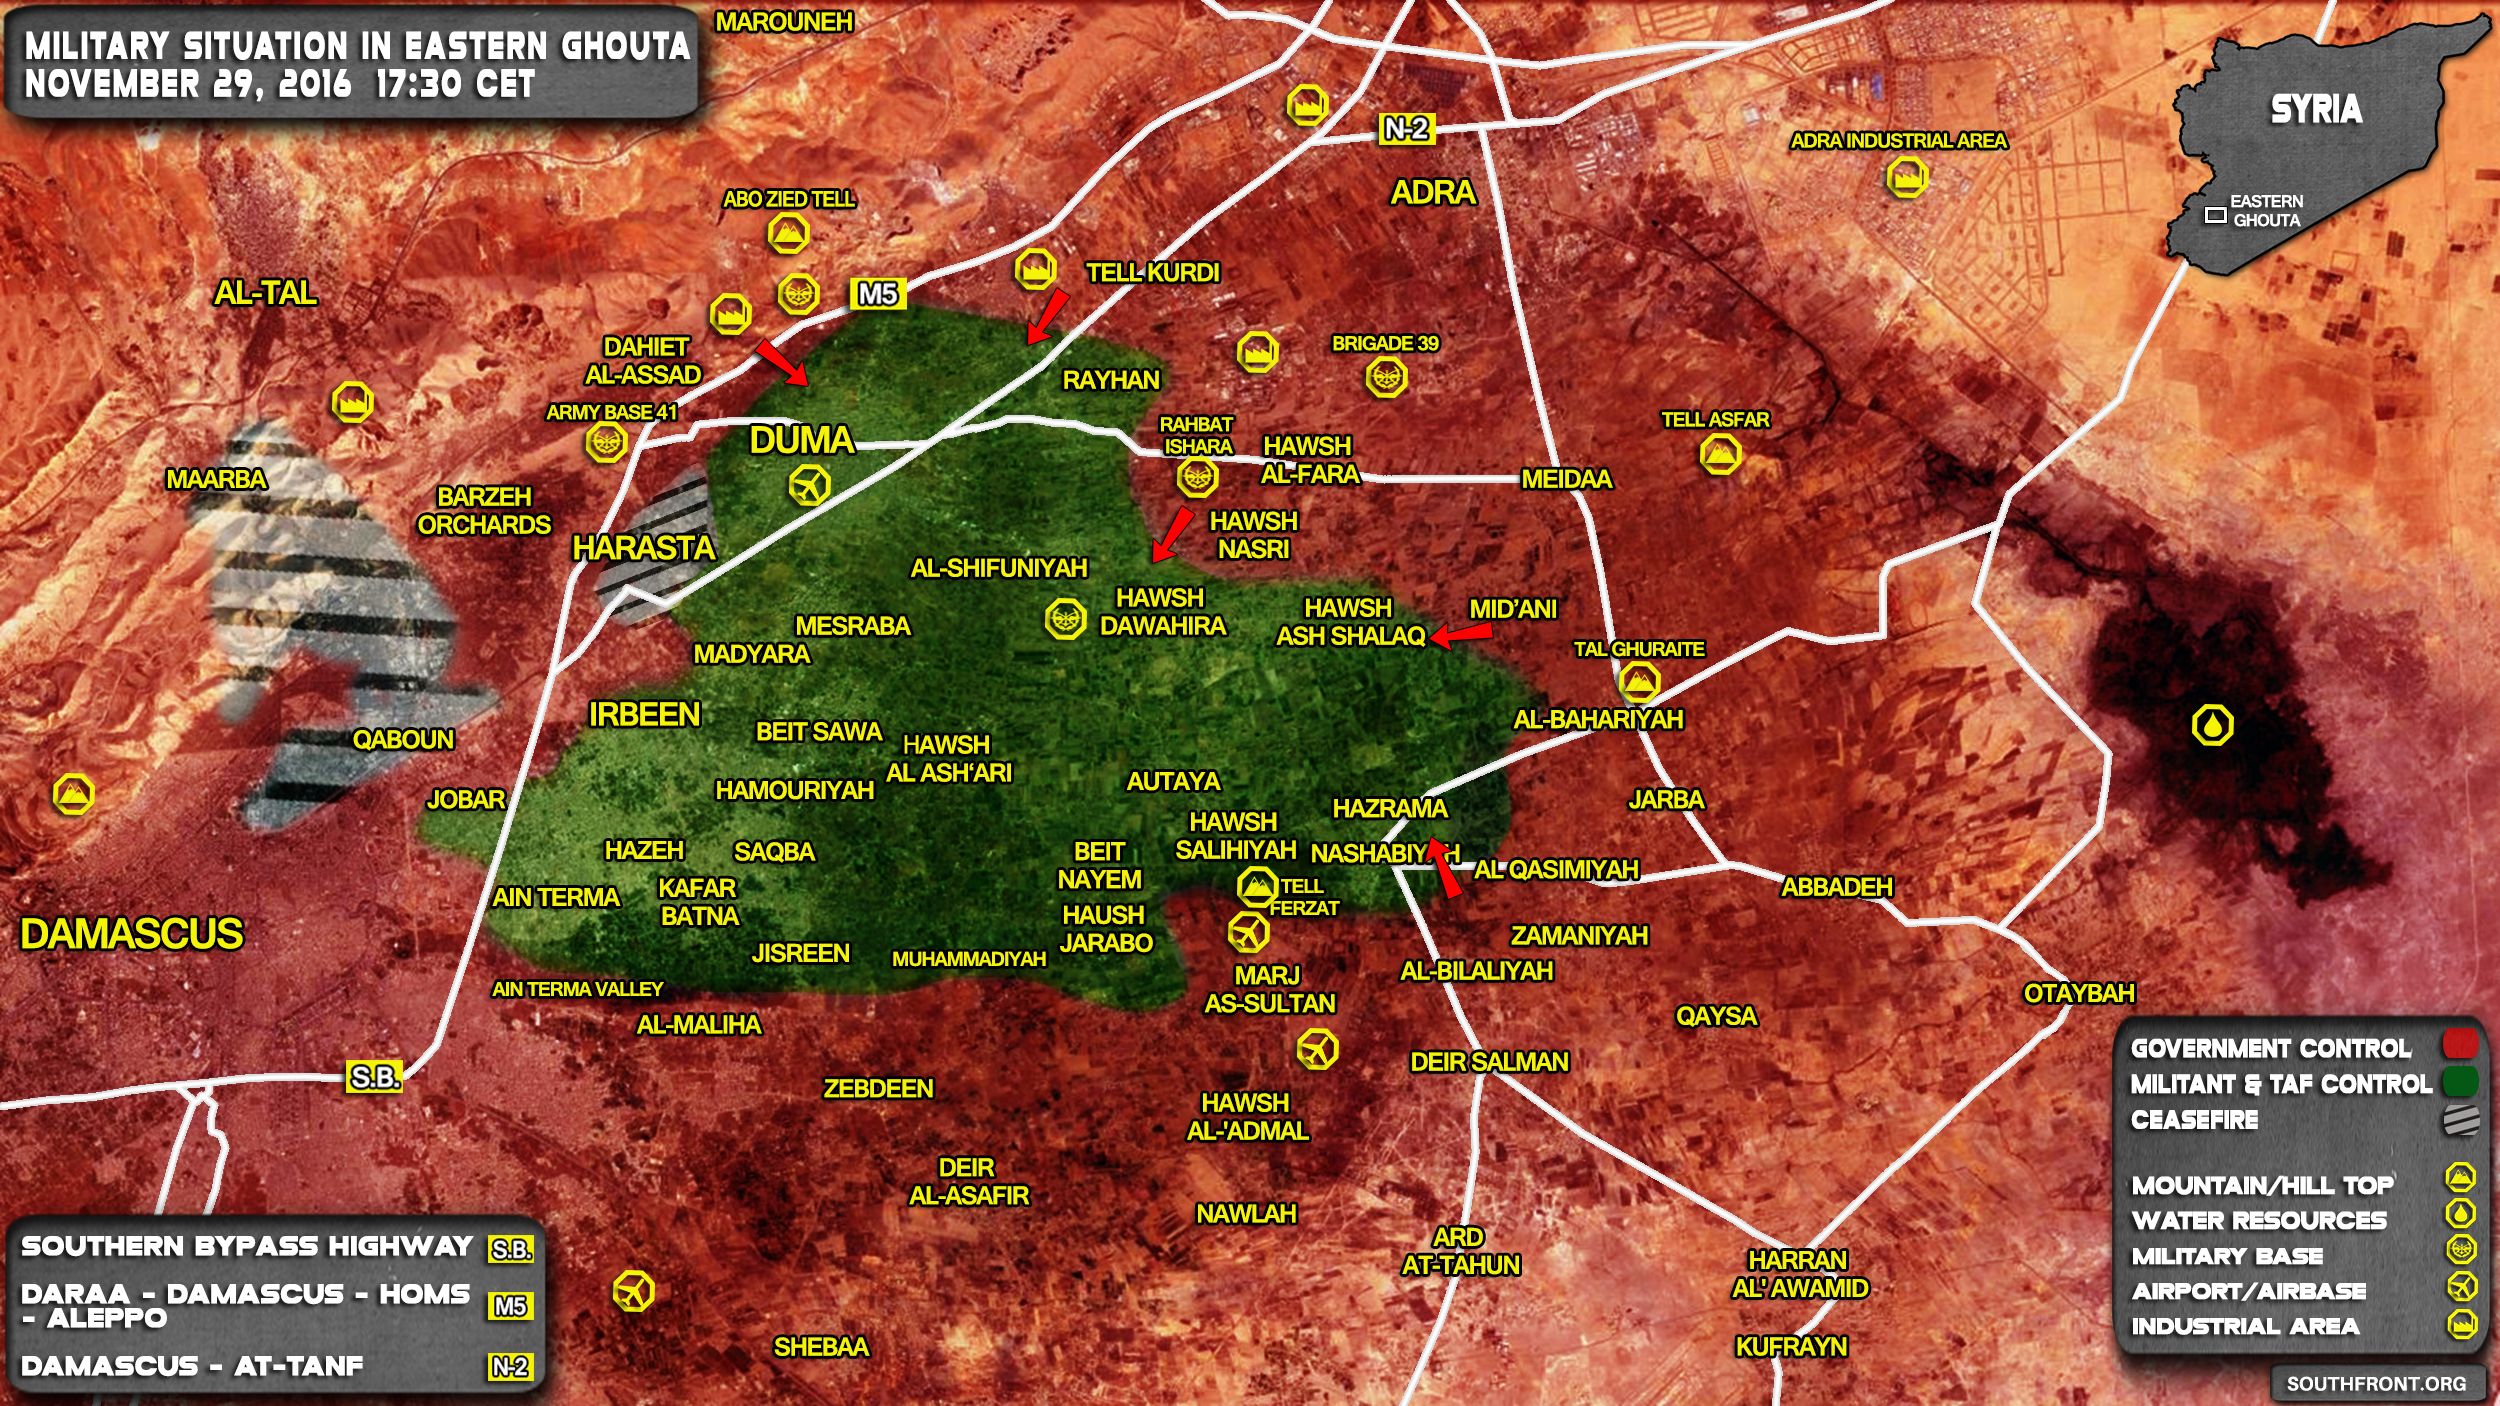 Syrian Army Liberates Mid'ani Village in Eastern Ghouta